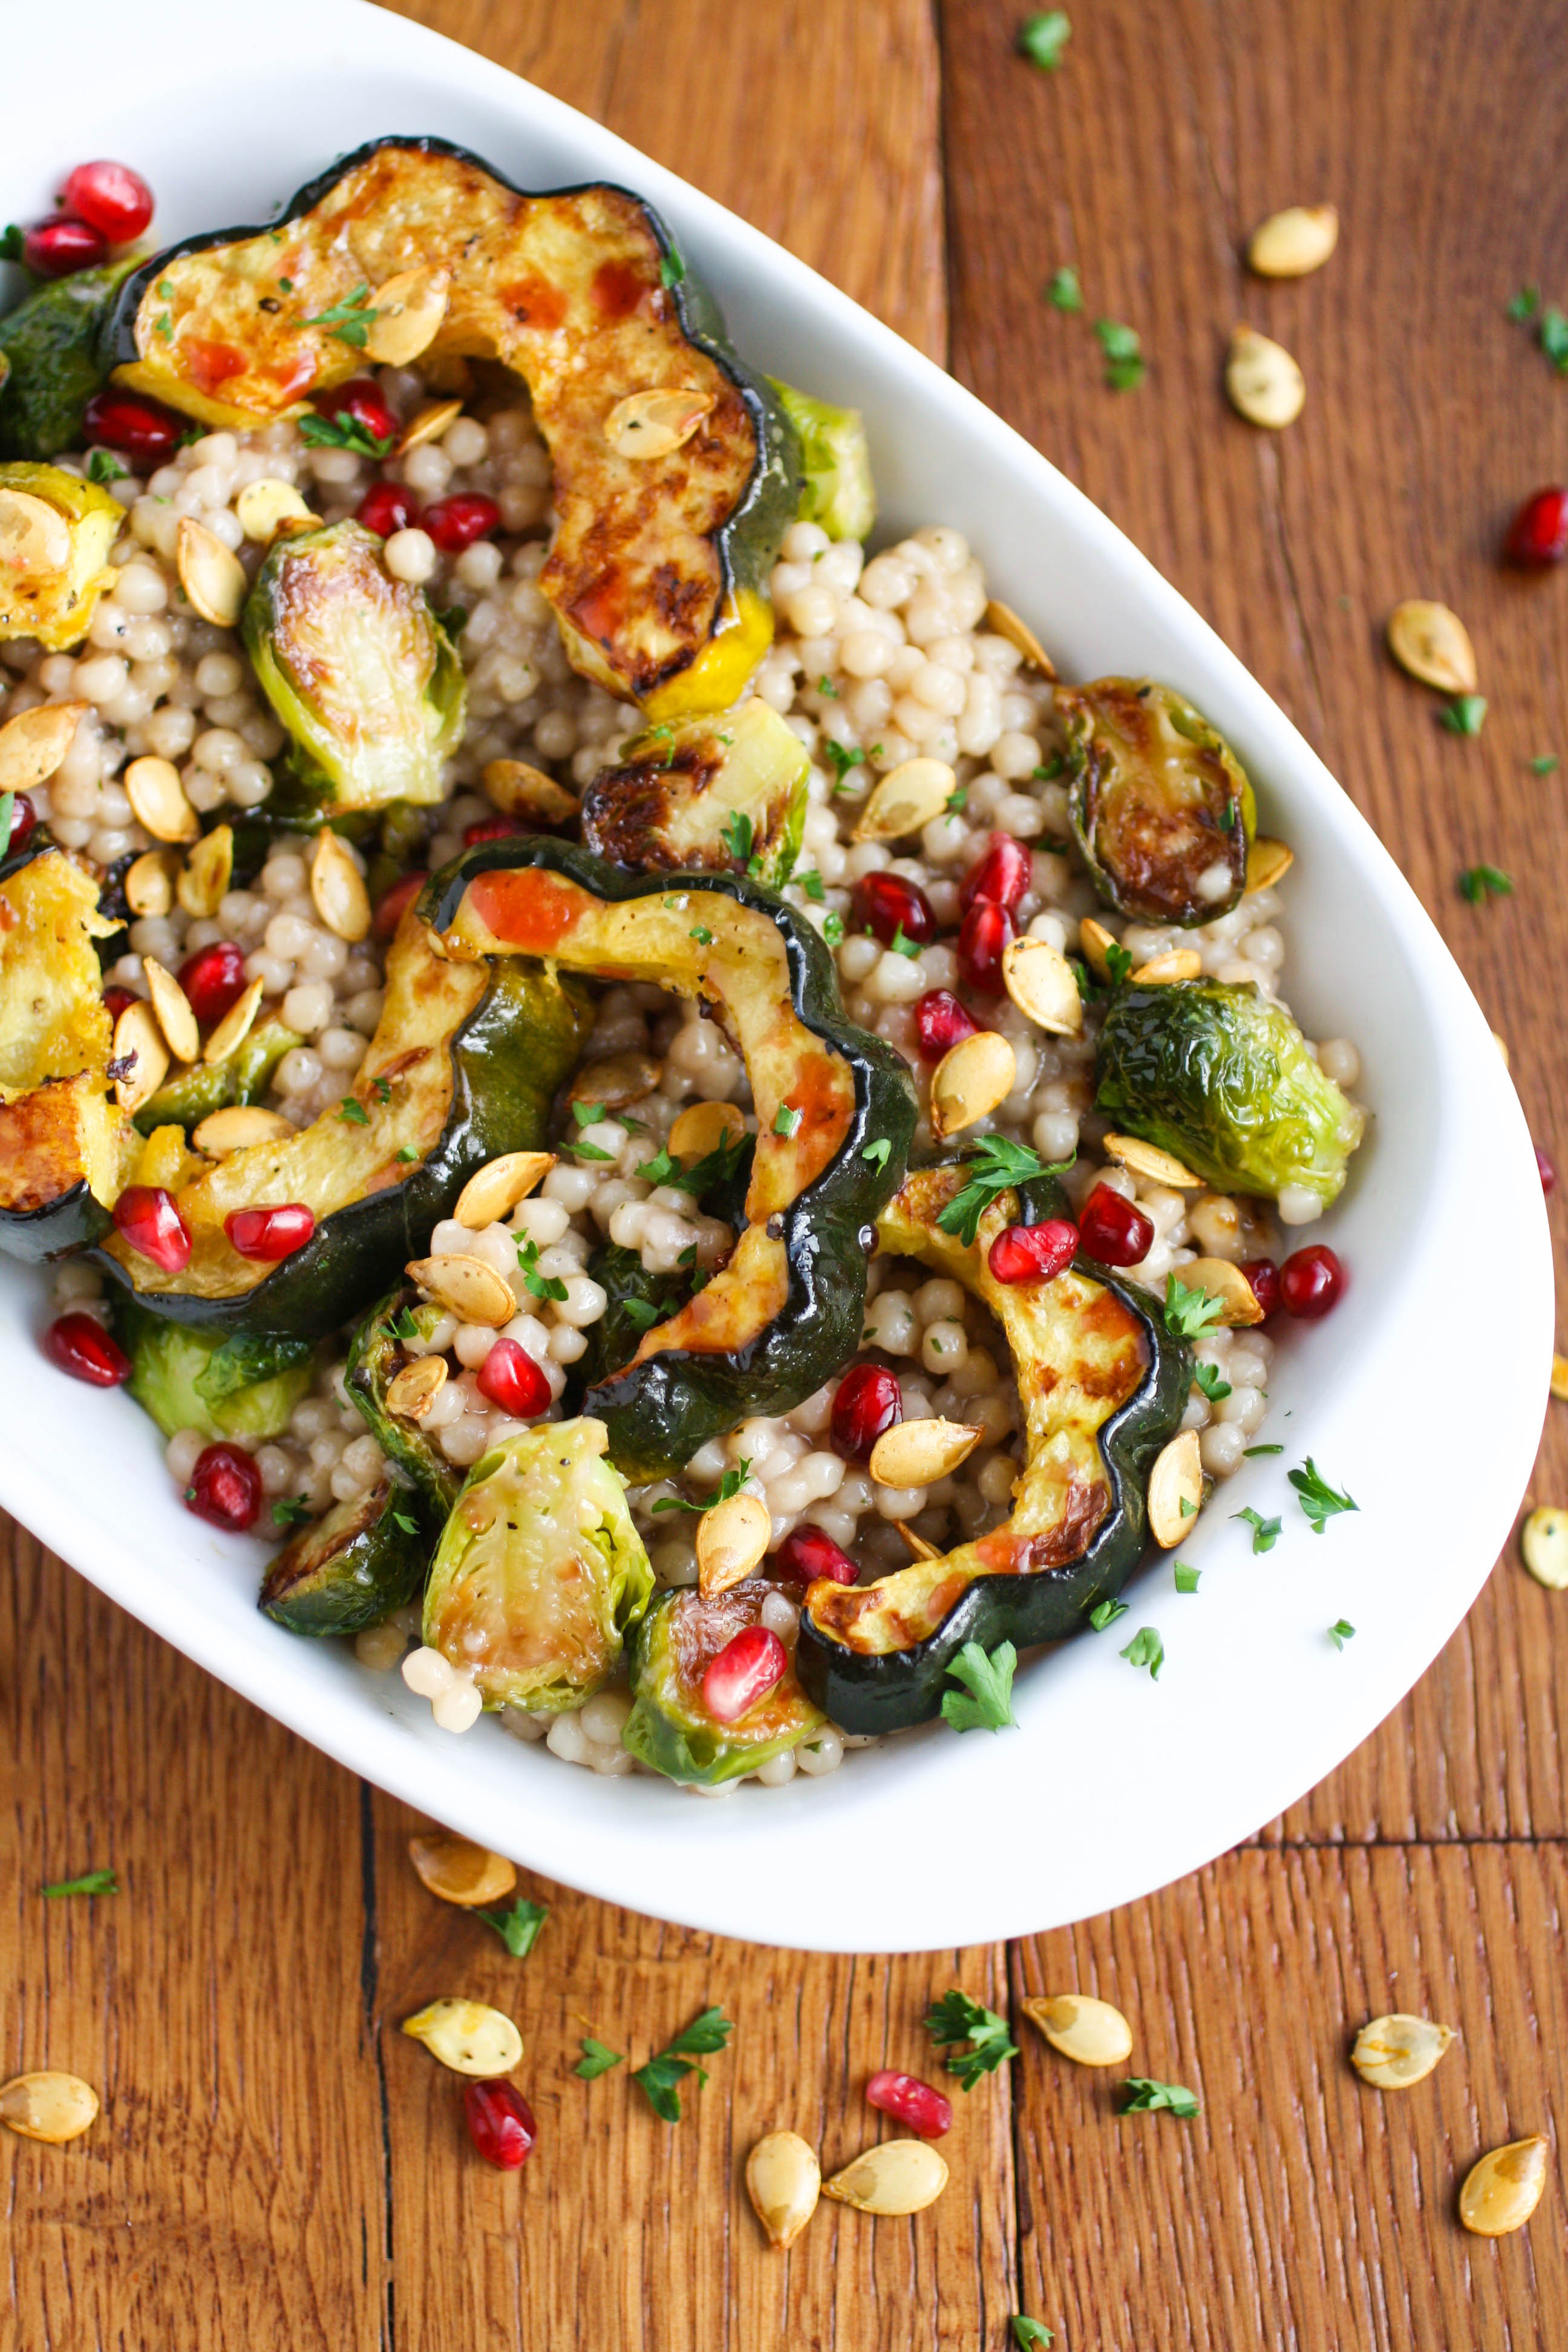 Roasted Fall Vegetable and Couscous Salad with Pomegranate Vinaigrette is a fabulous fall side dish. Serve this side dish all fall season!